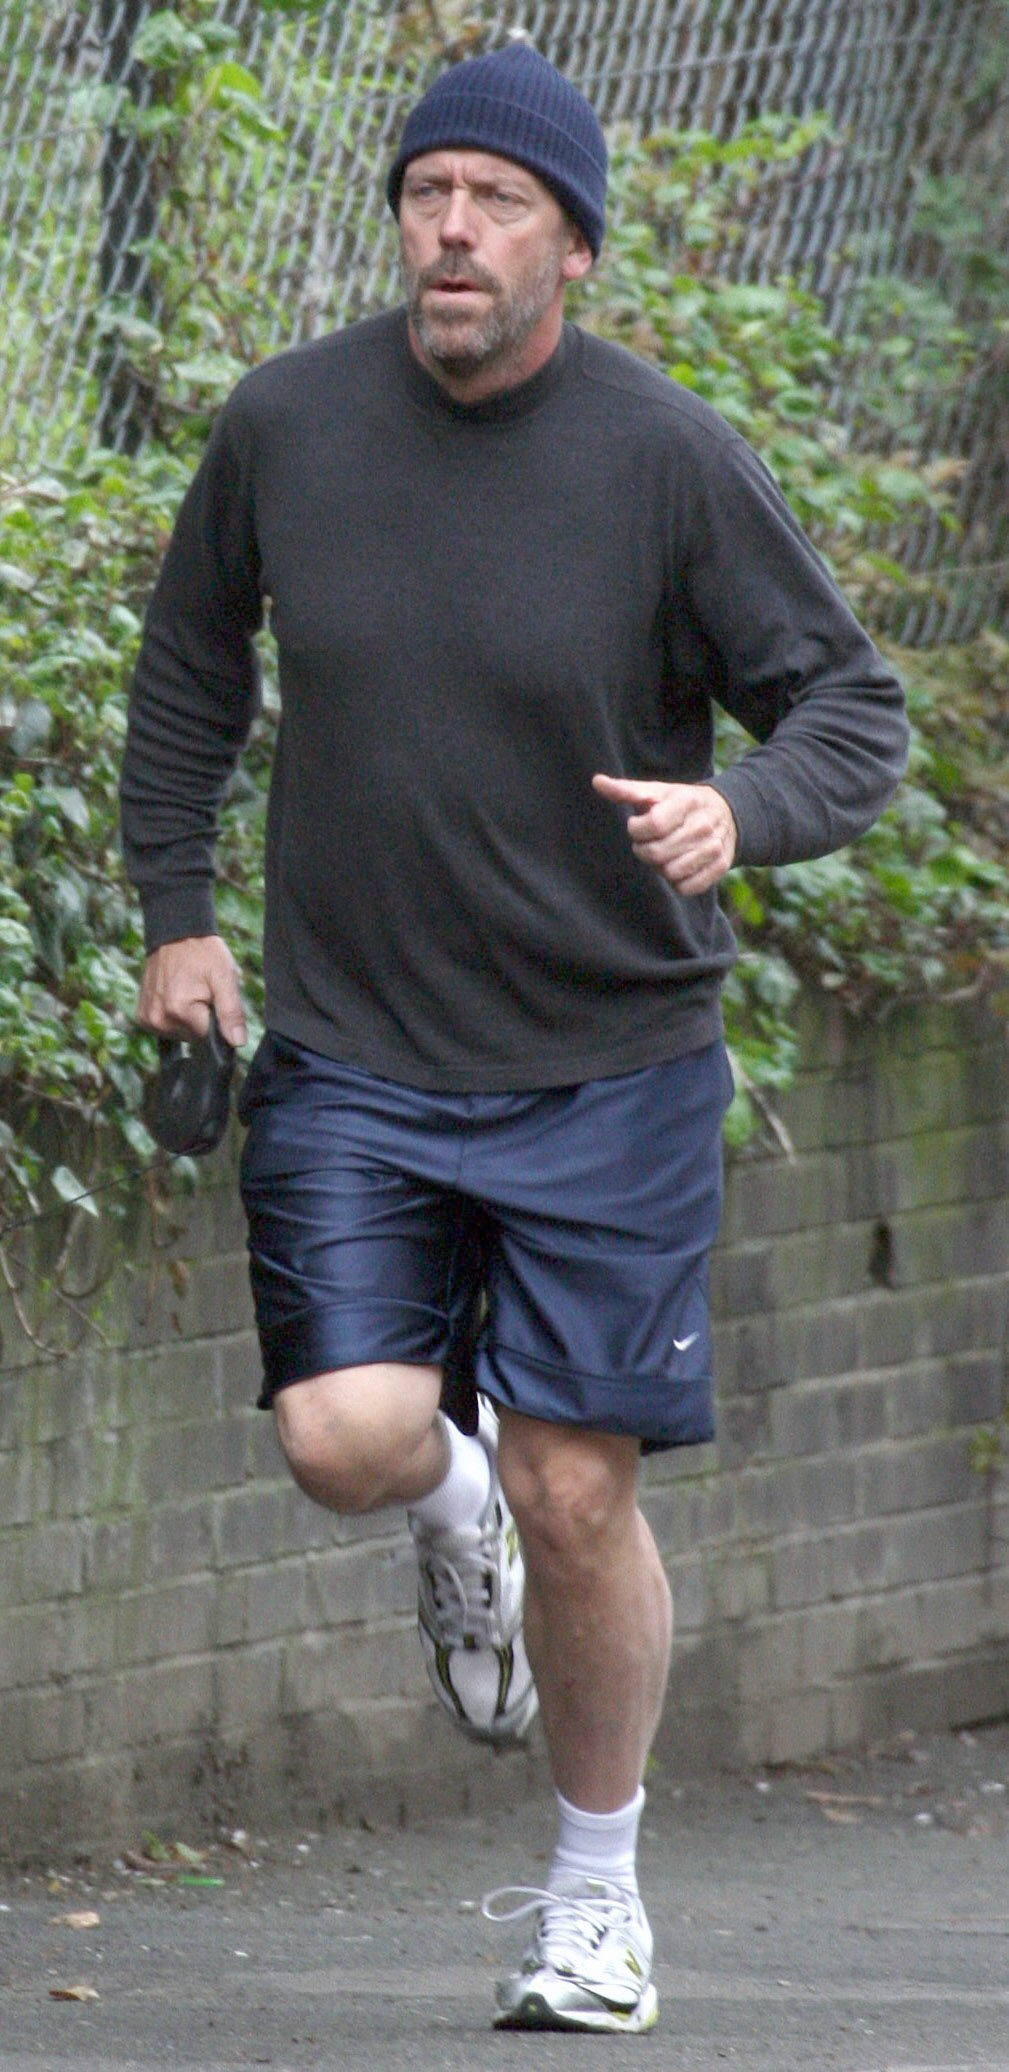 64039_Hugh_Laurie_jogging_in_London_with_his_dog7_April19-01_122_505lo.jpg